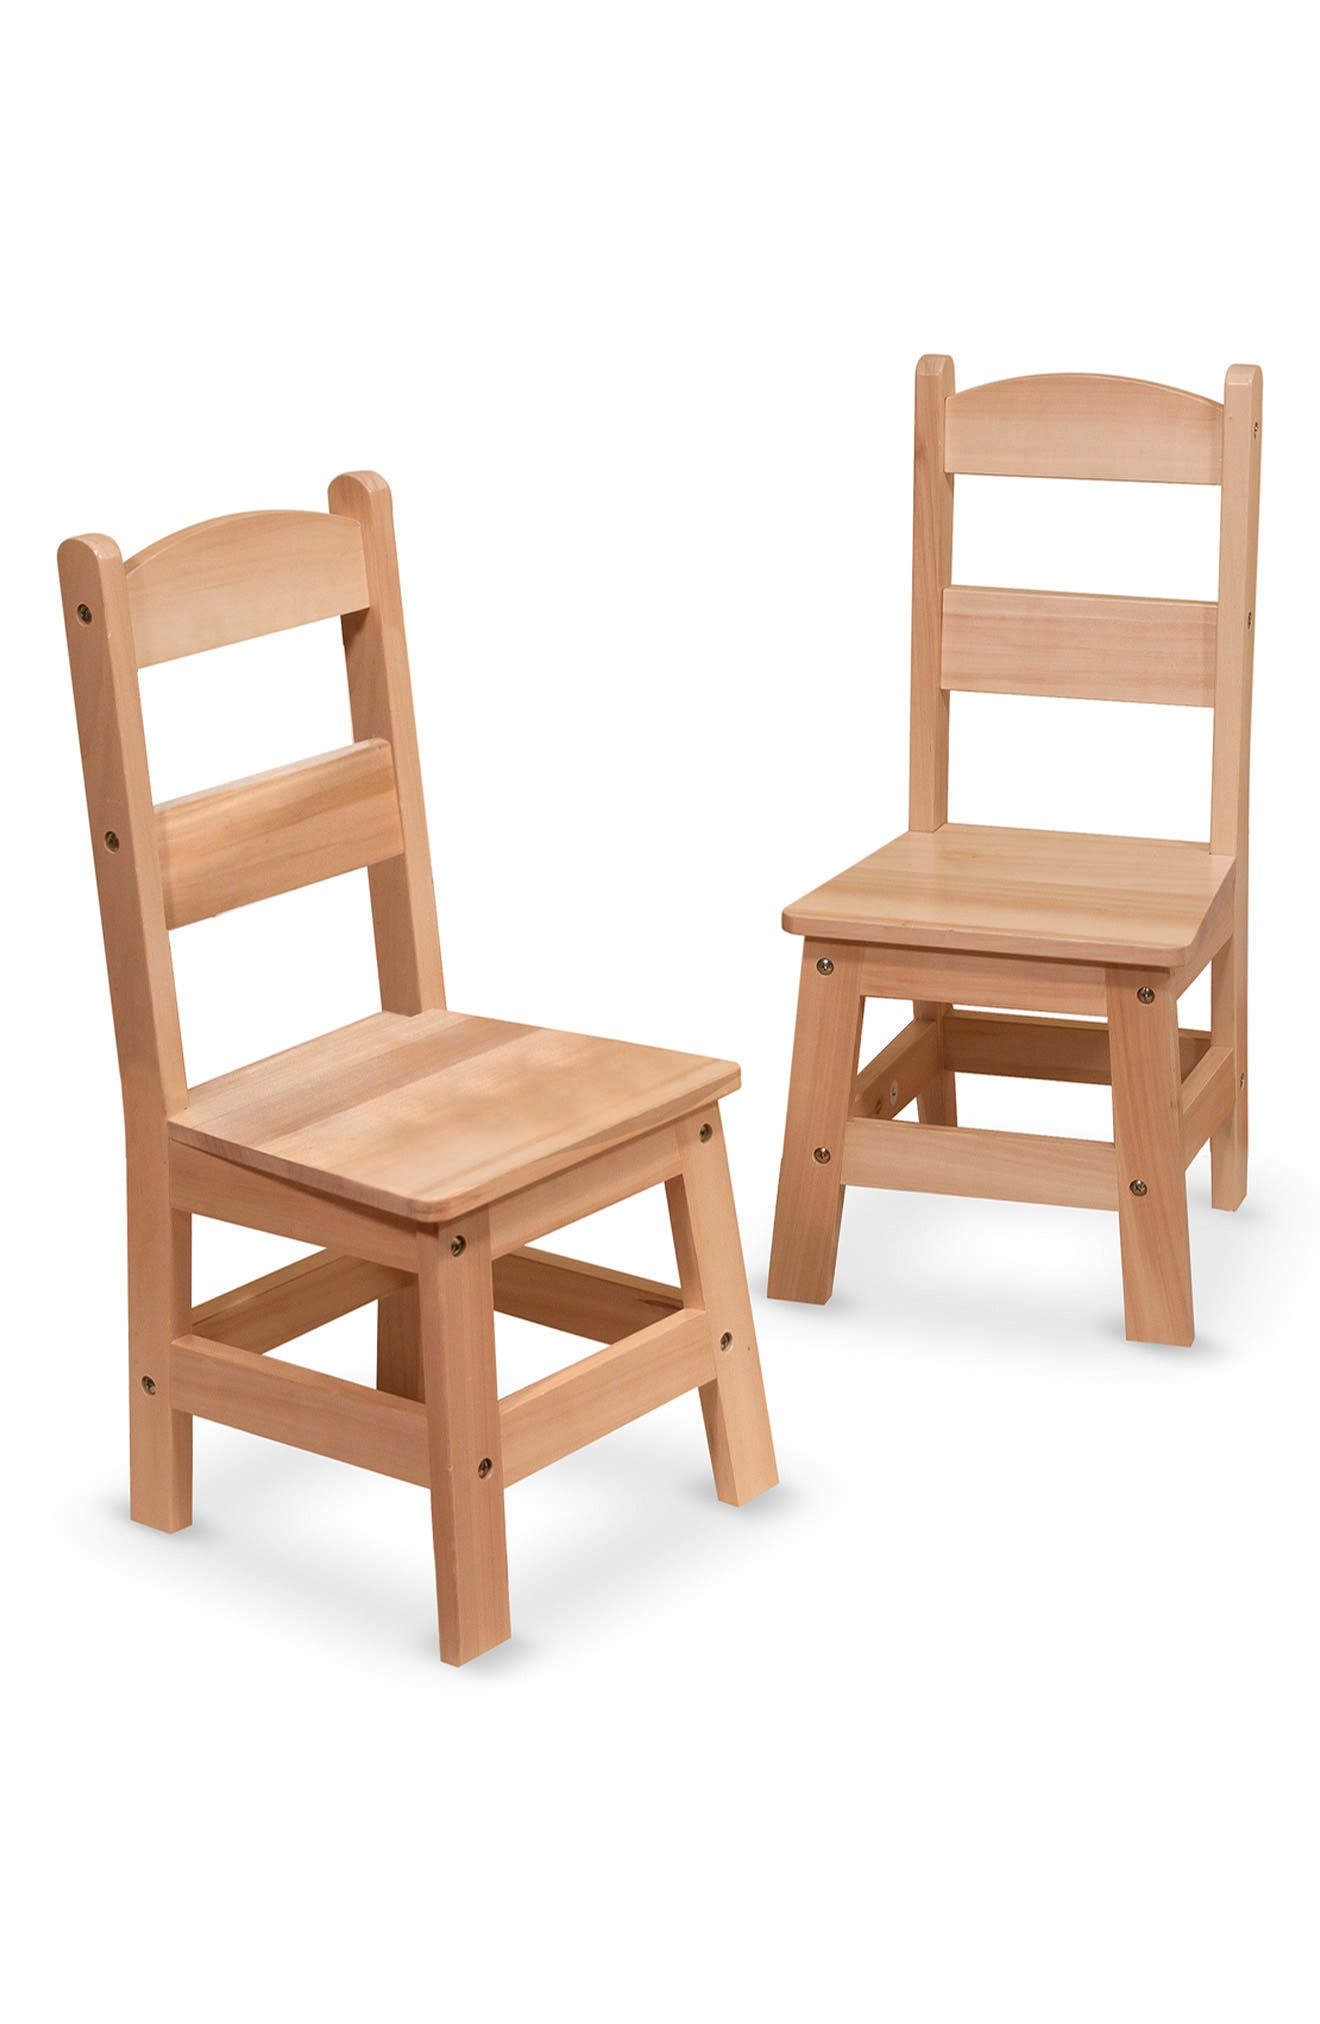 Toddler Melissa  Doug Wooden Chairs Size One Size  Brown